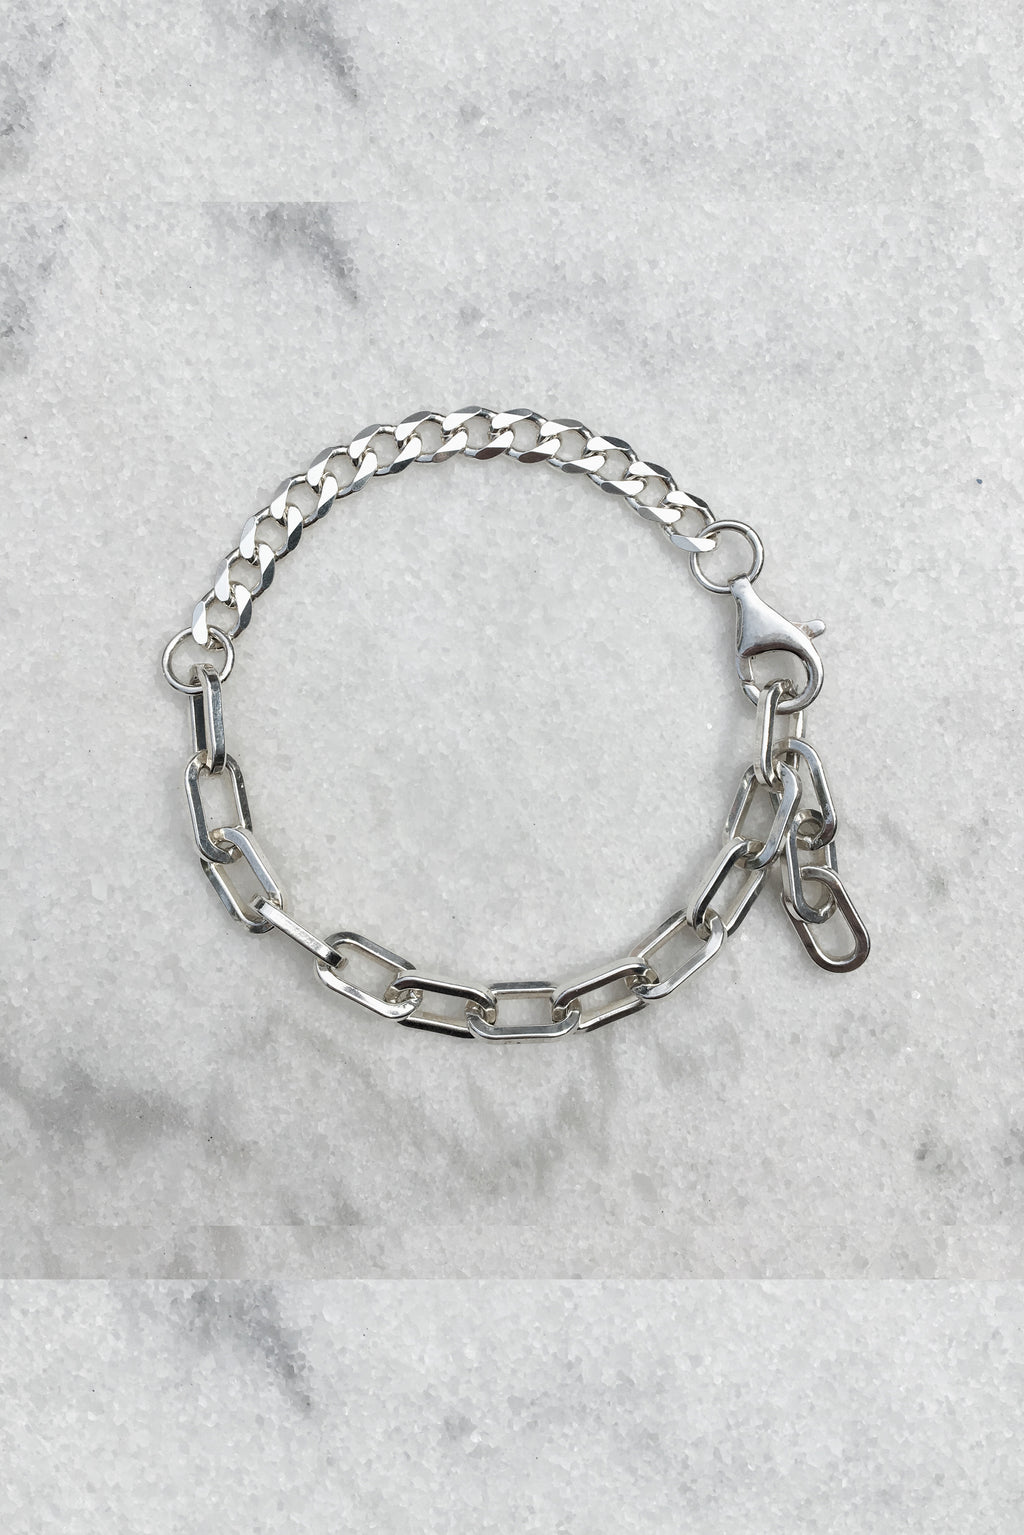 2 Chain Wrist Piece | Sterling Silver